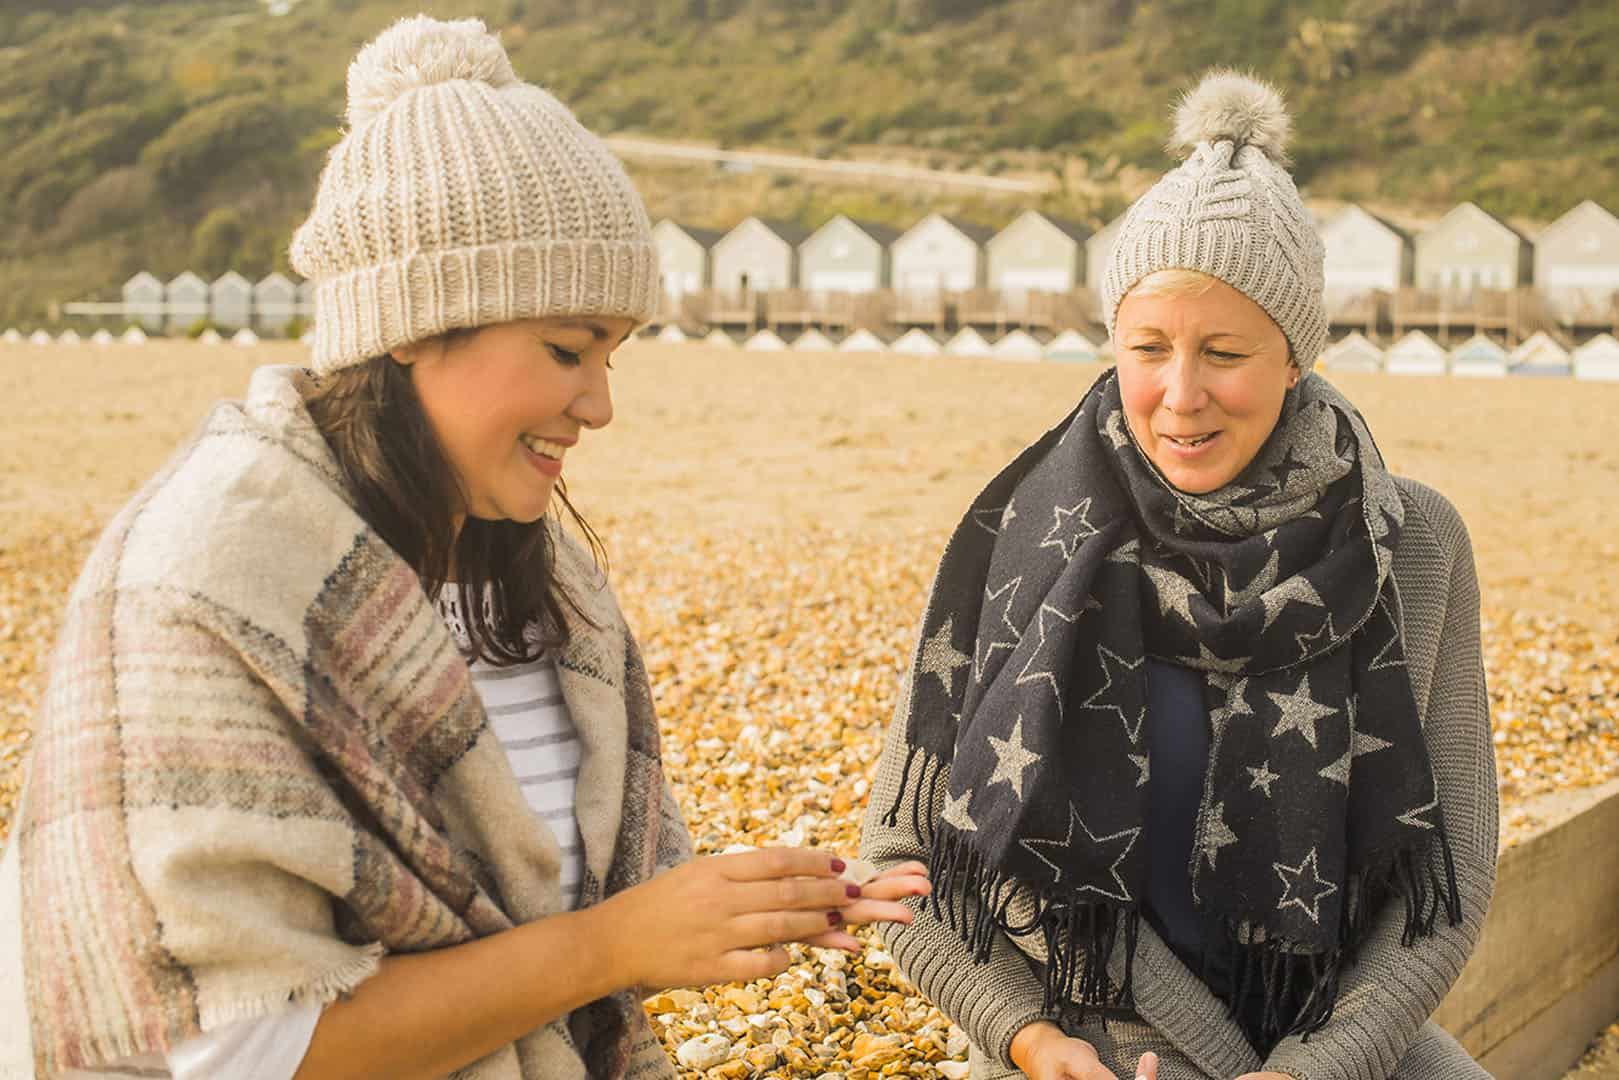 Two women sat on beach wrapped up warm with lodges in the background